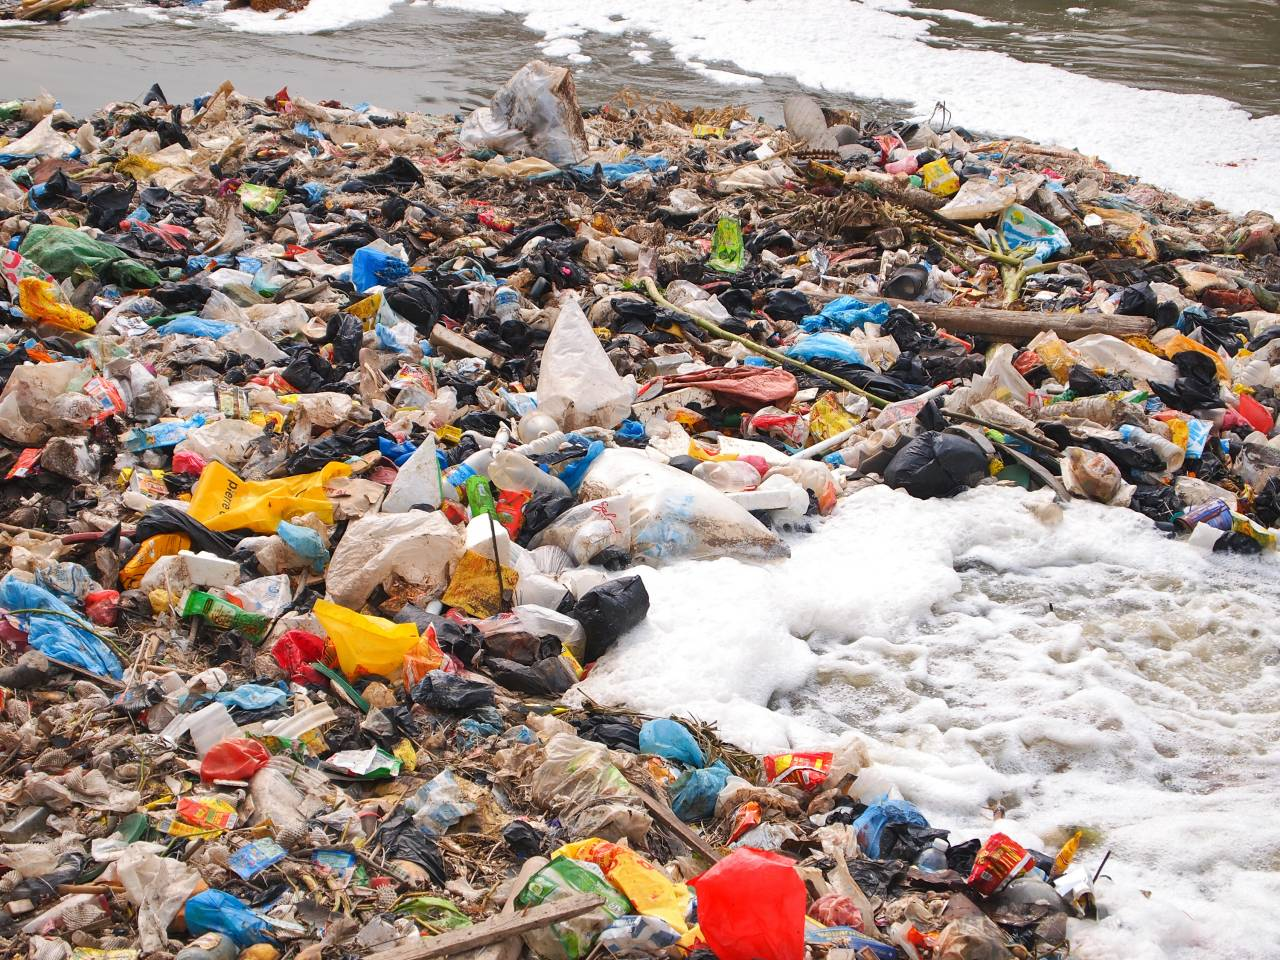 Ban of plastic bags best for environment and intergenerational equity